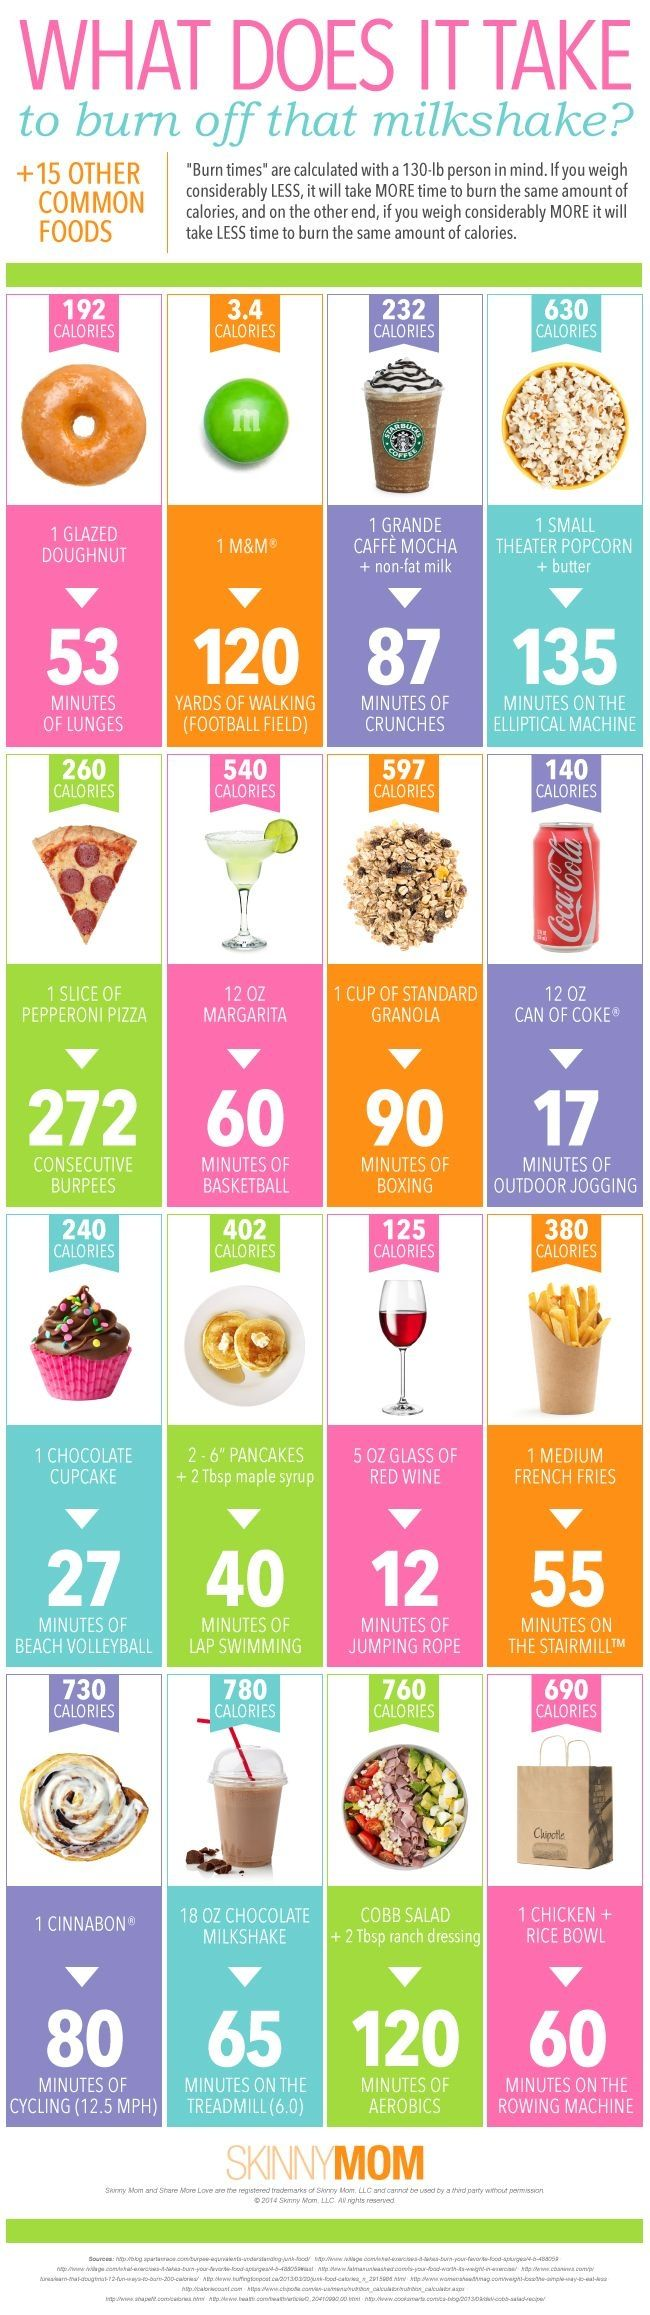 What It Takes To Work Off Calories fitness motivation exercise healthy living home exercise food facts